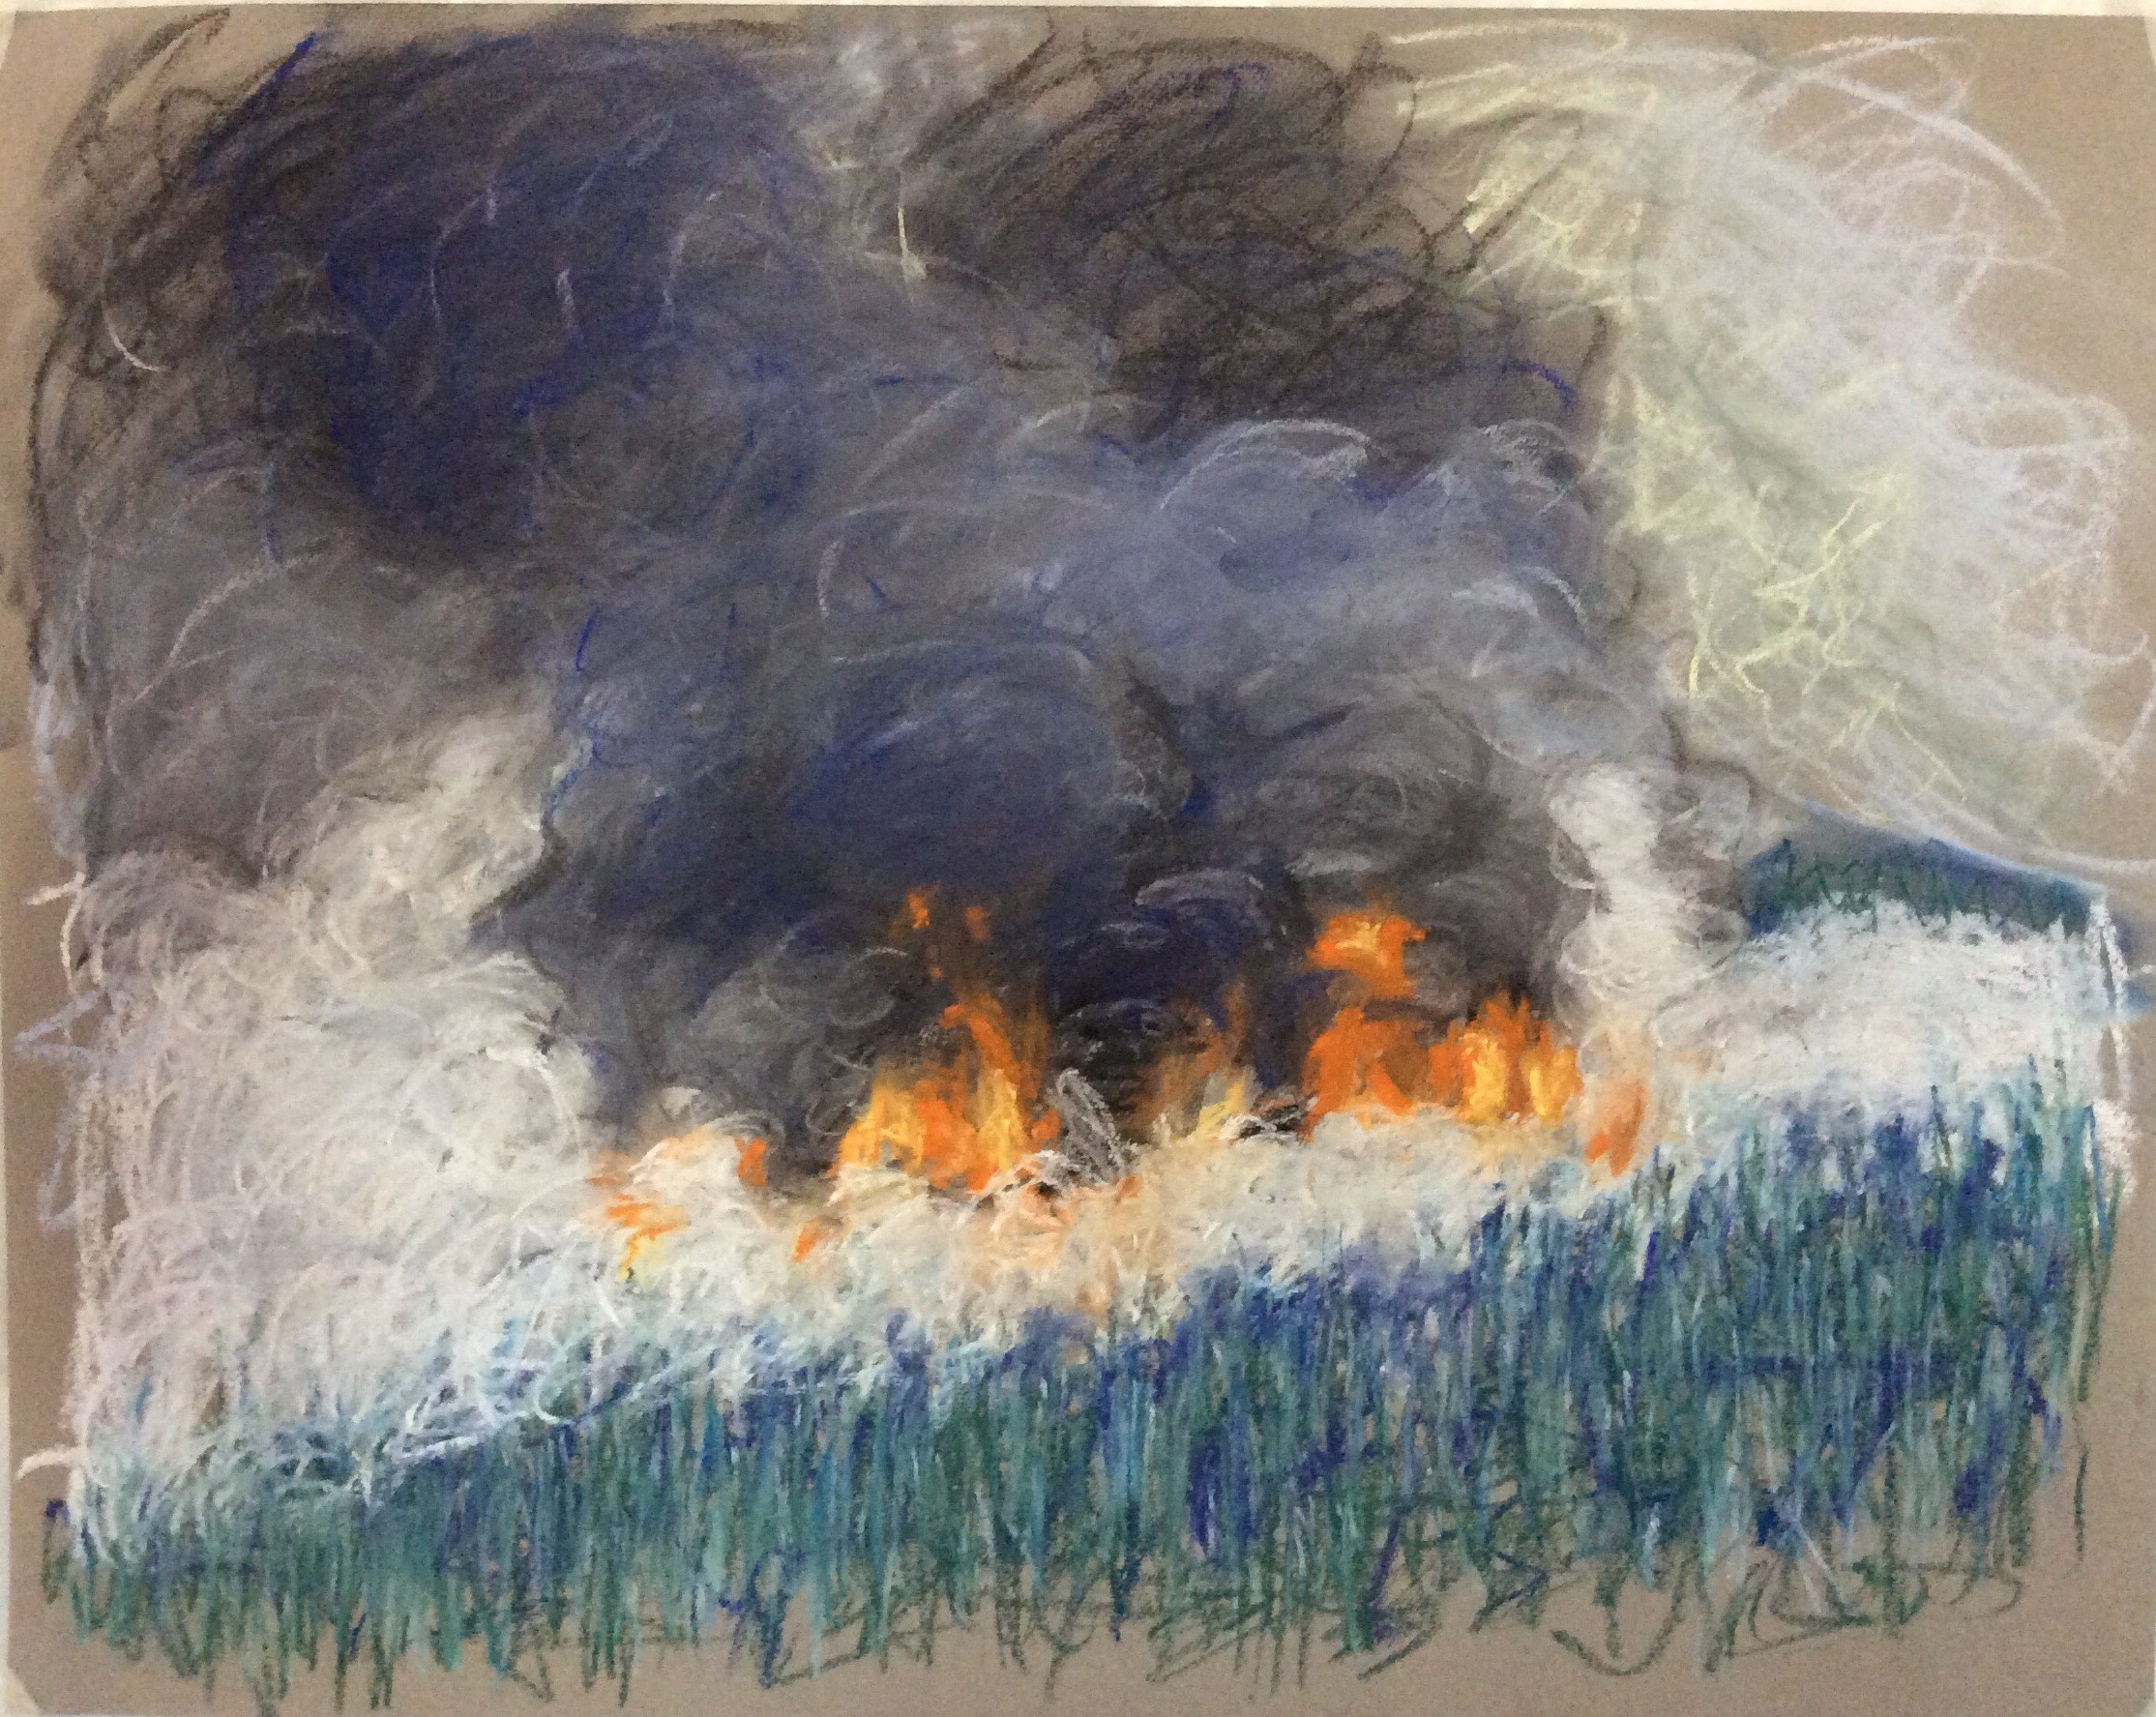 Phyllis Anderson,  Sugar Loaf Fire,  Pastel on Paper, 19 x 24 inches